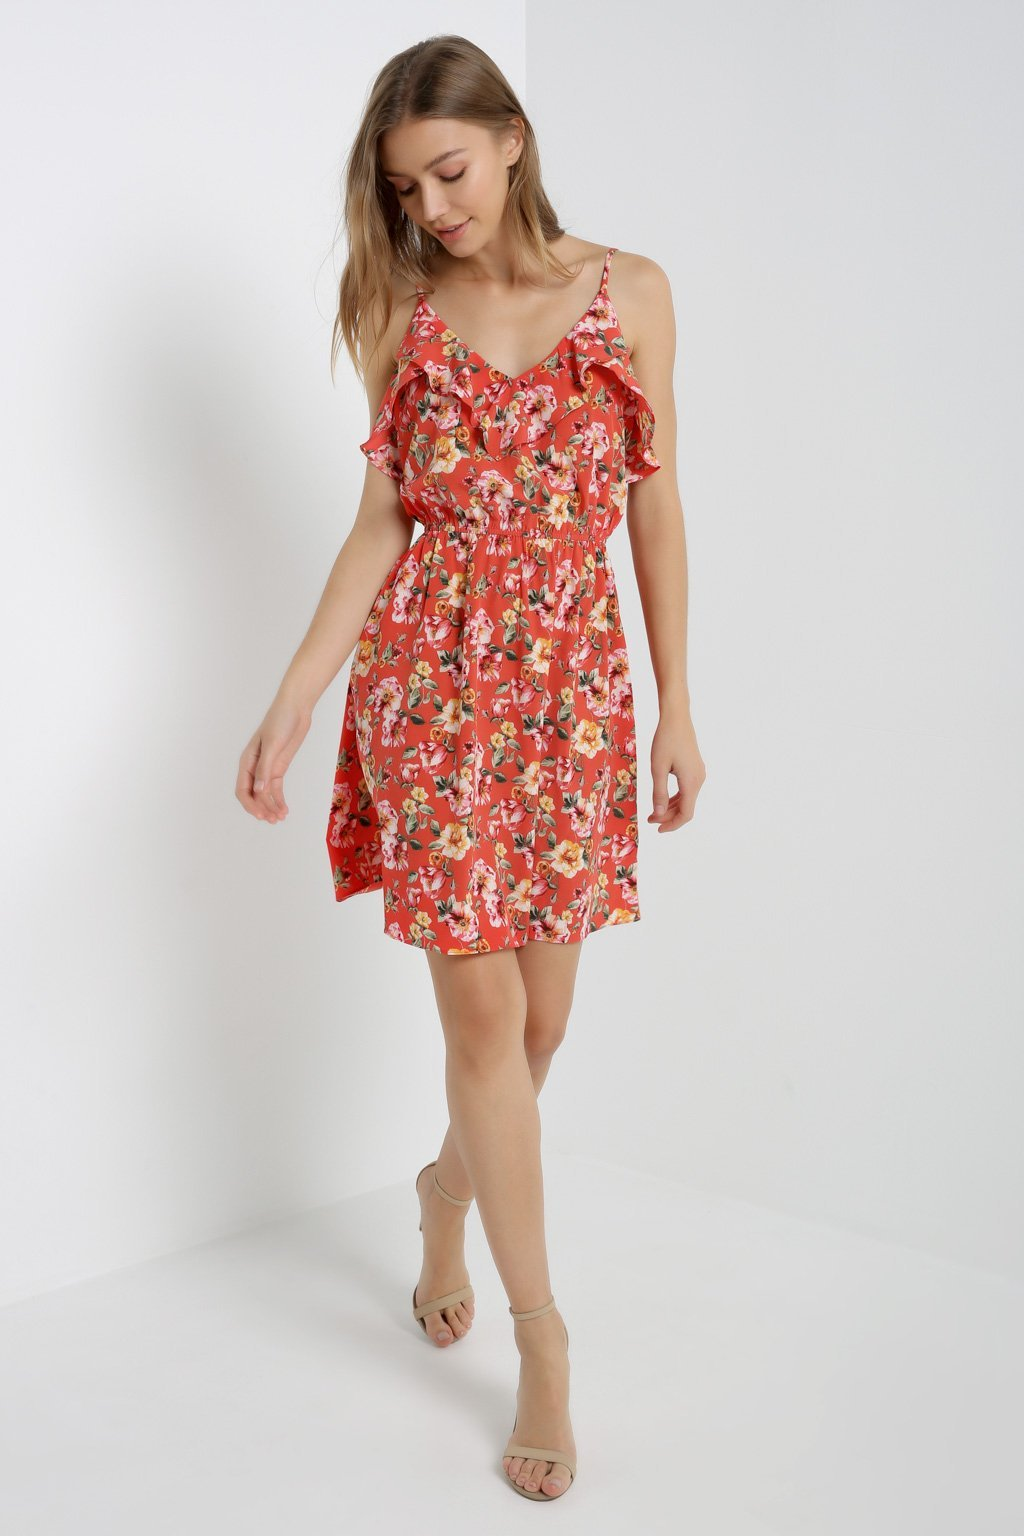 Poshsquare Dress Floral Ruffle Trim Dress